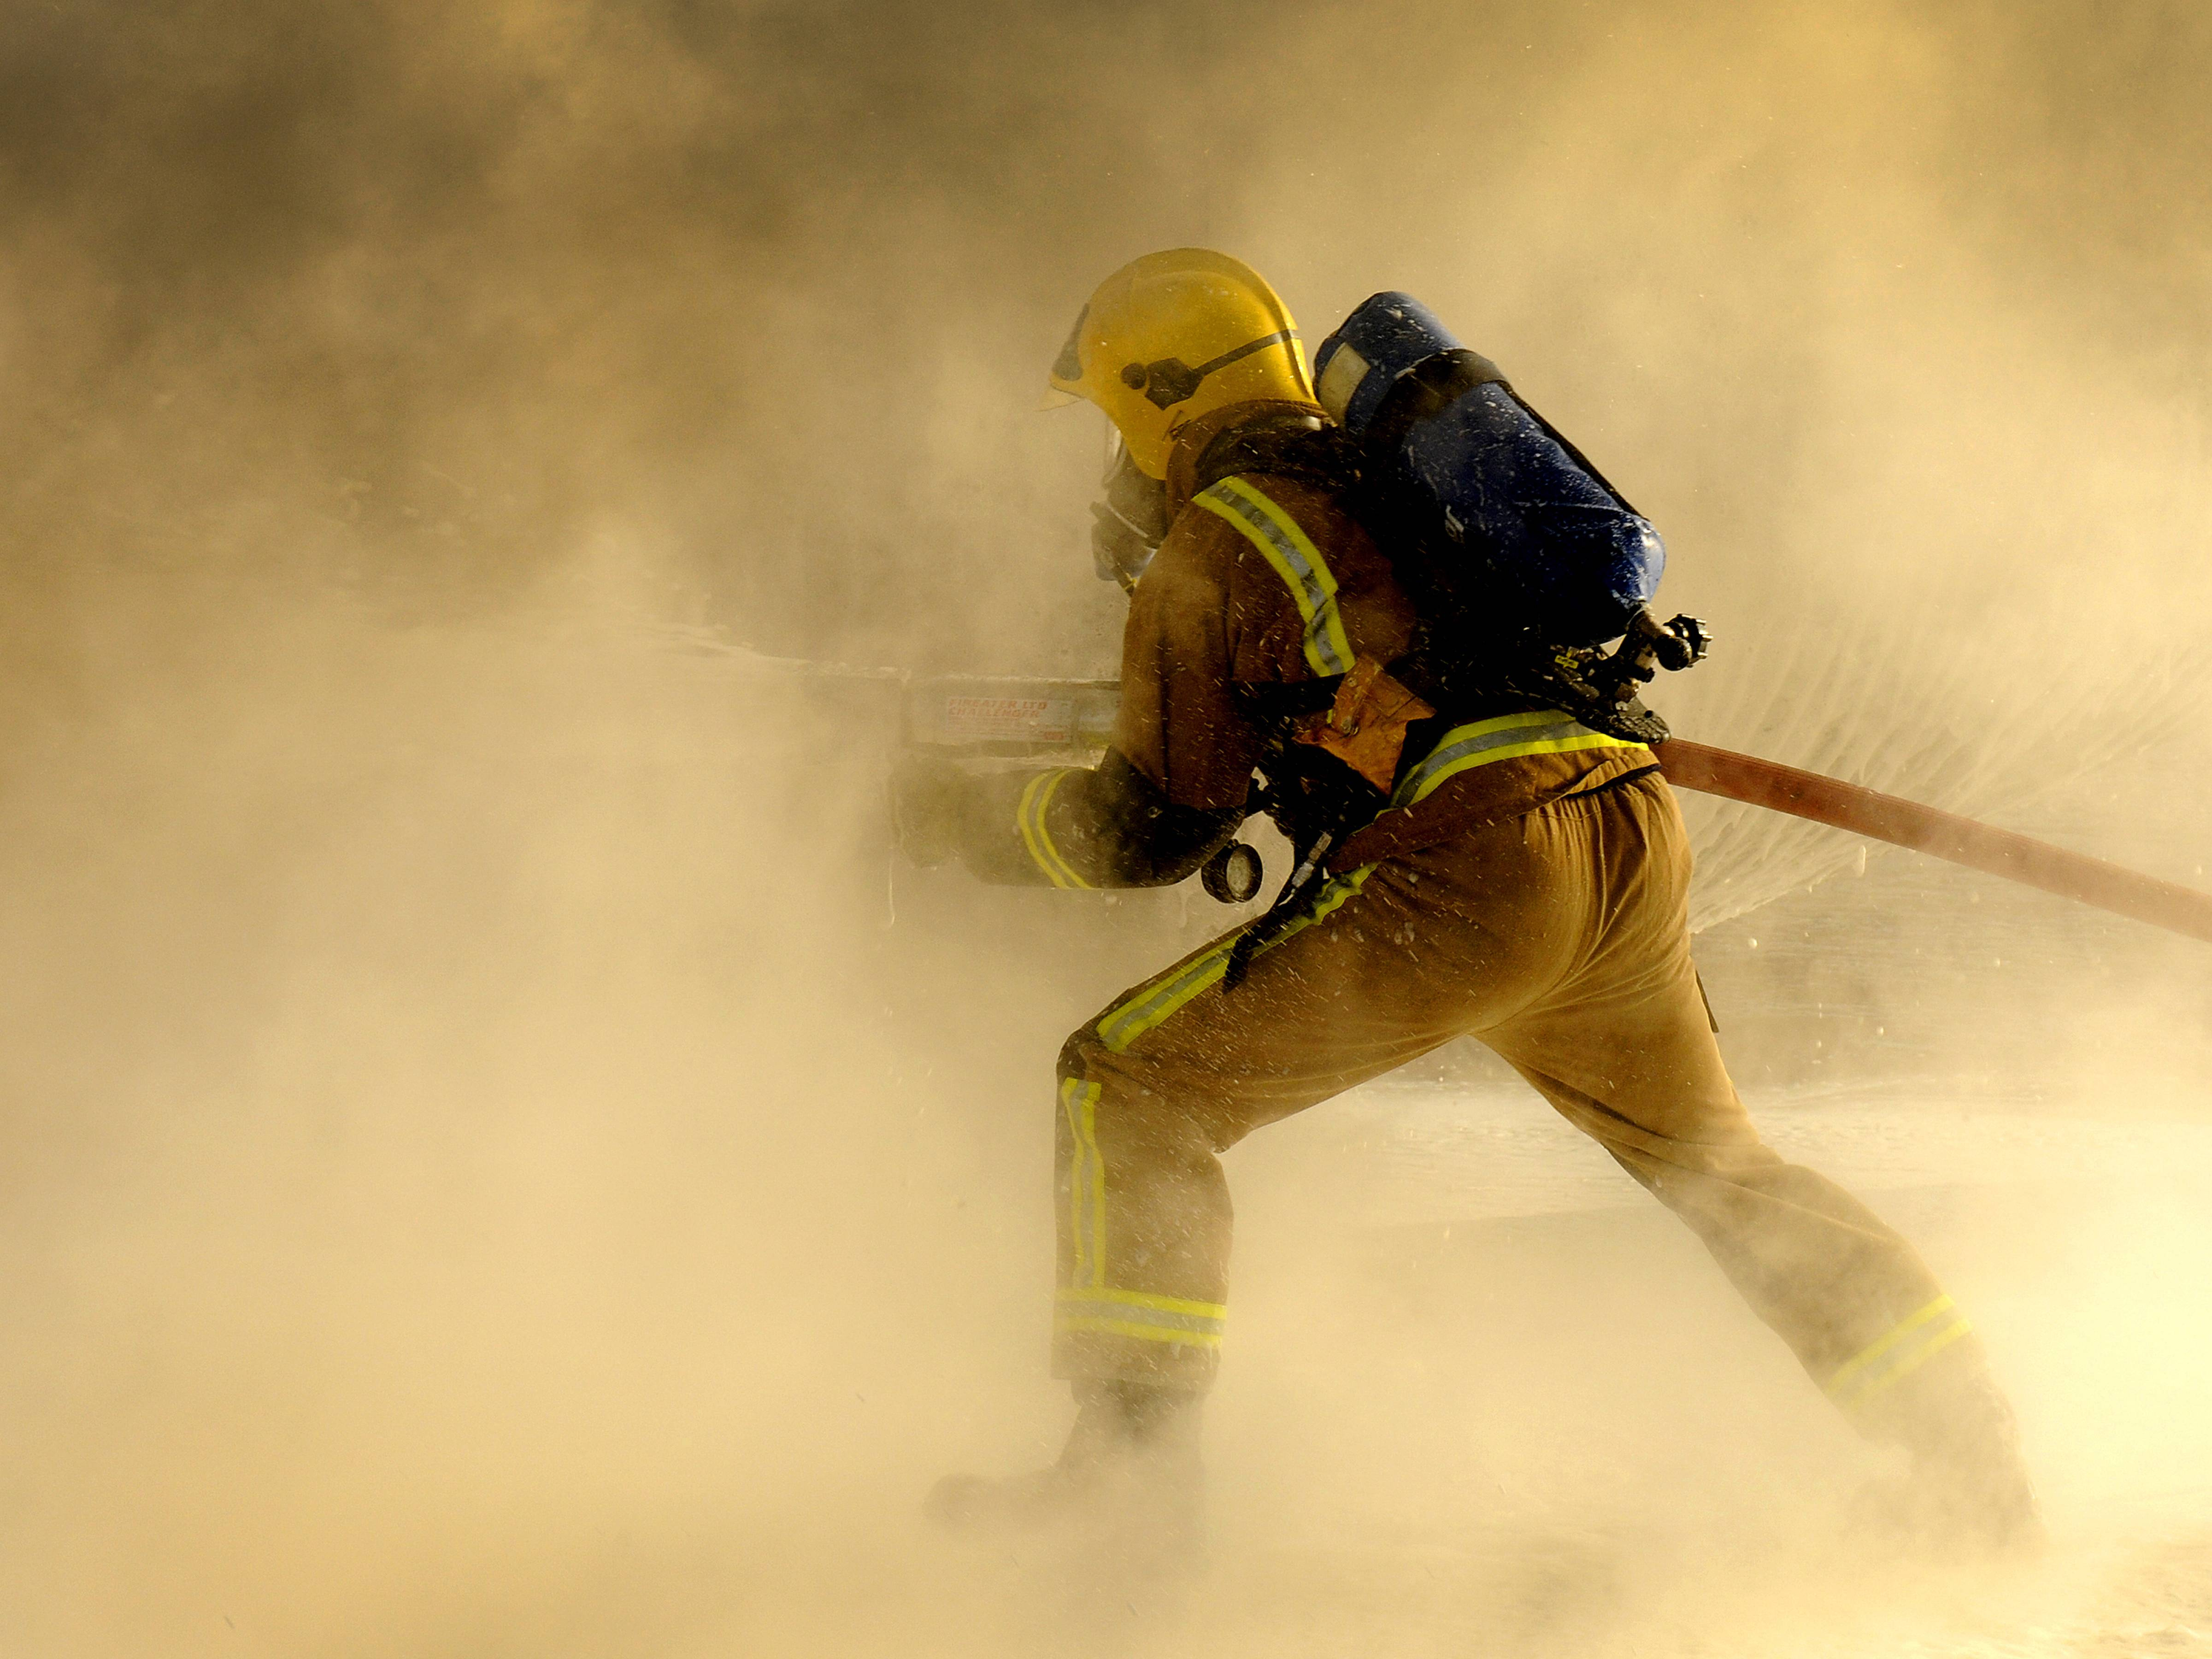 3d Wallpaper For Htc One M8 Download Firefighter Pics Wallpaper Gallery